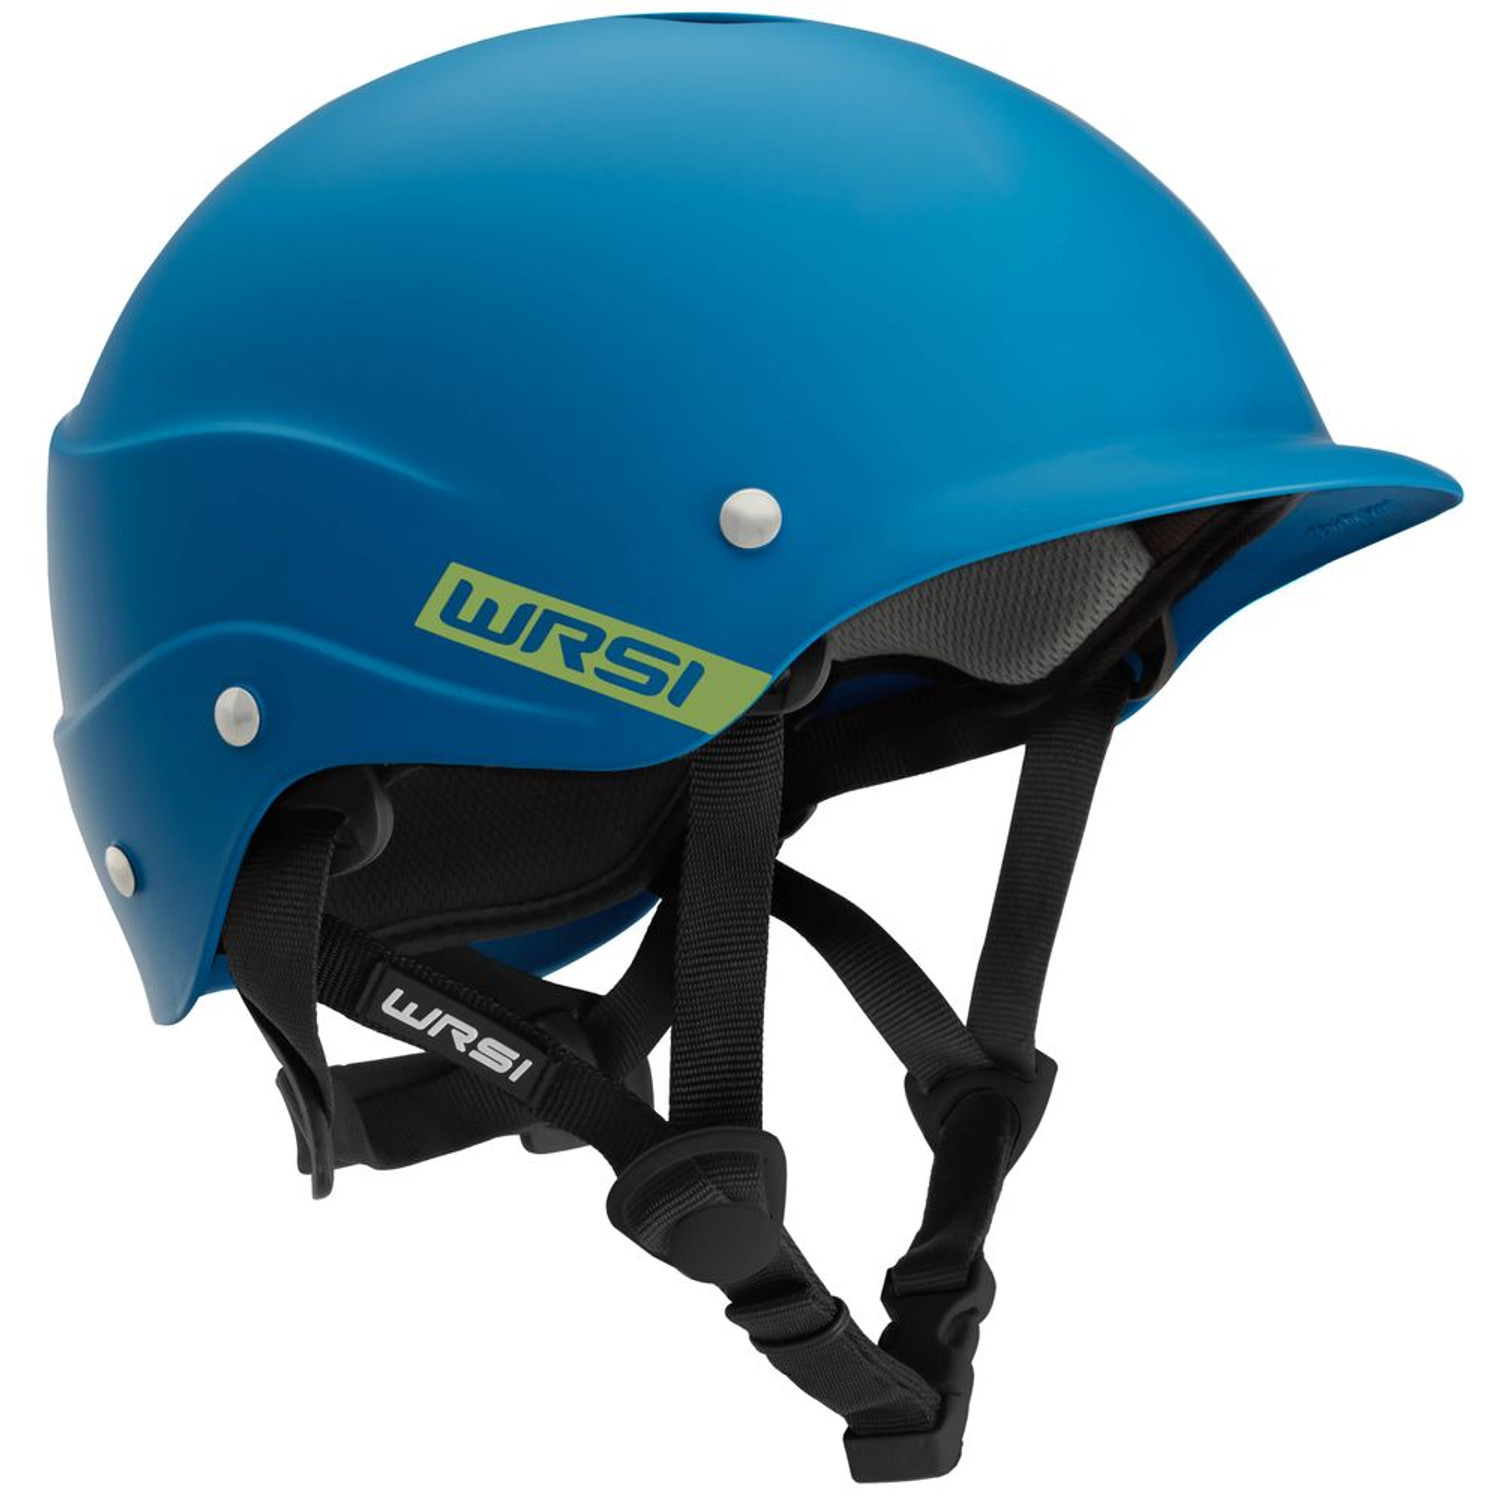 Current Helmet